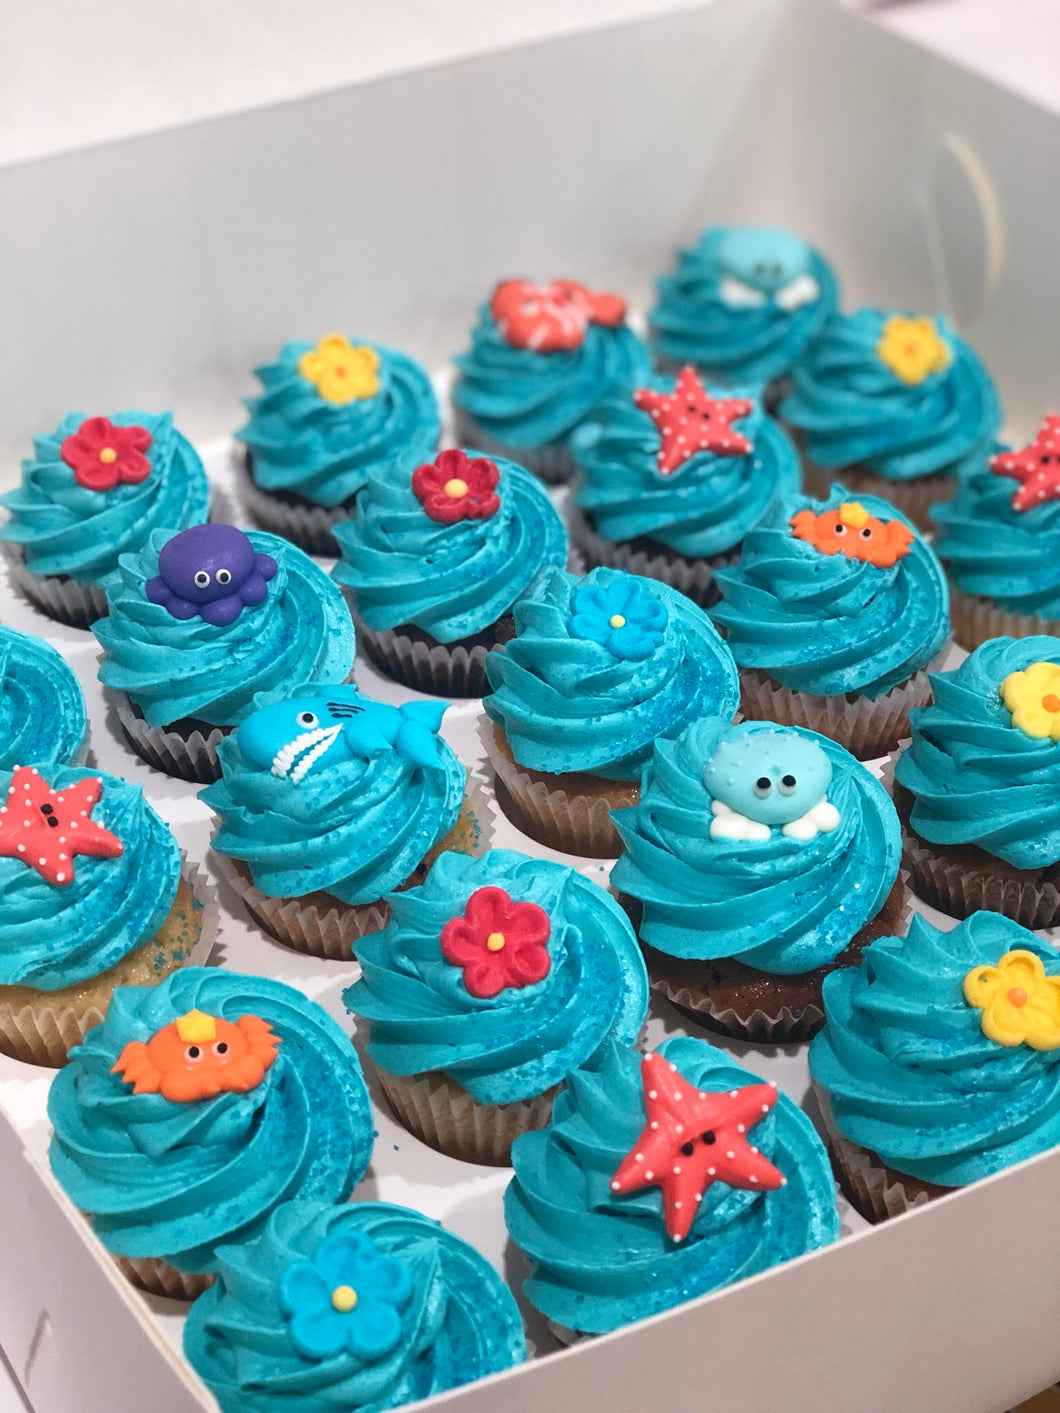 24 Mini Under The Sea Cupcakes